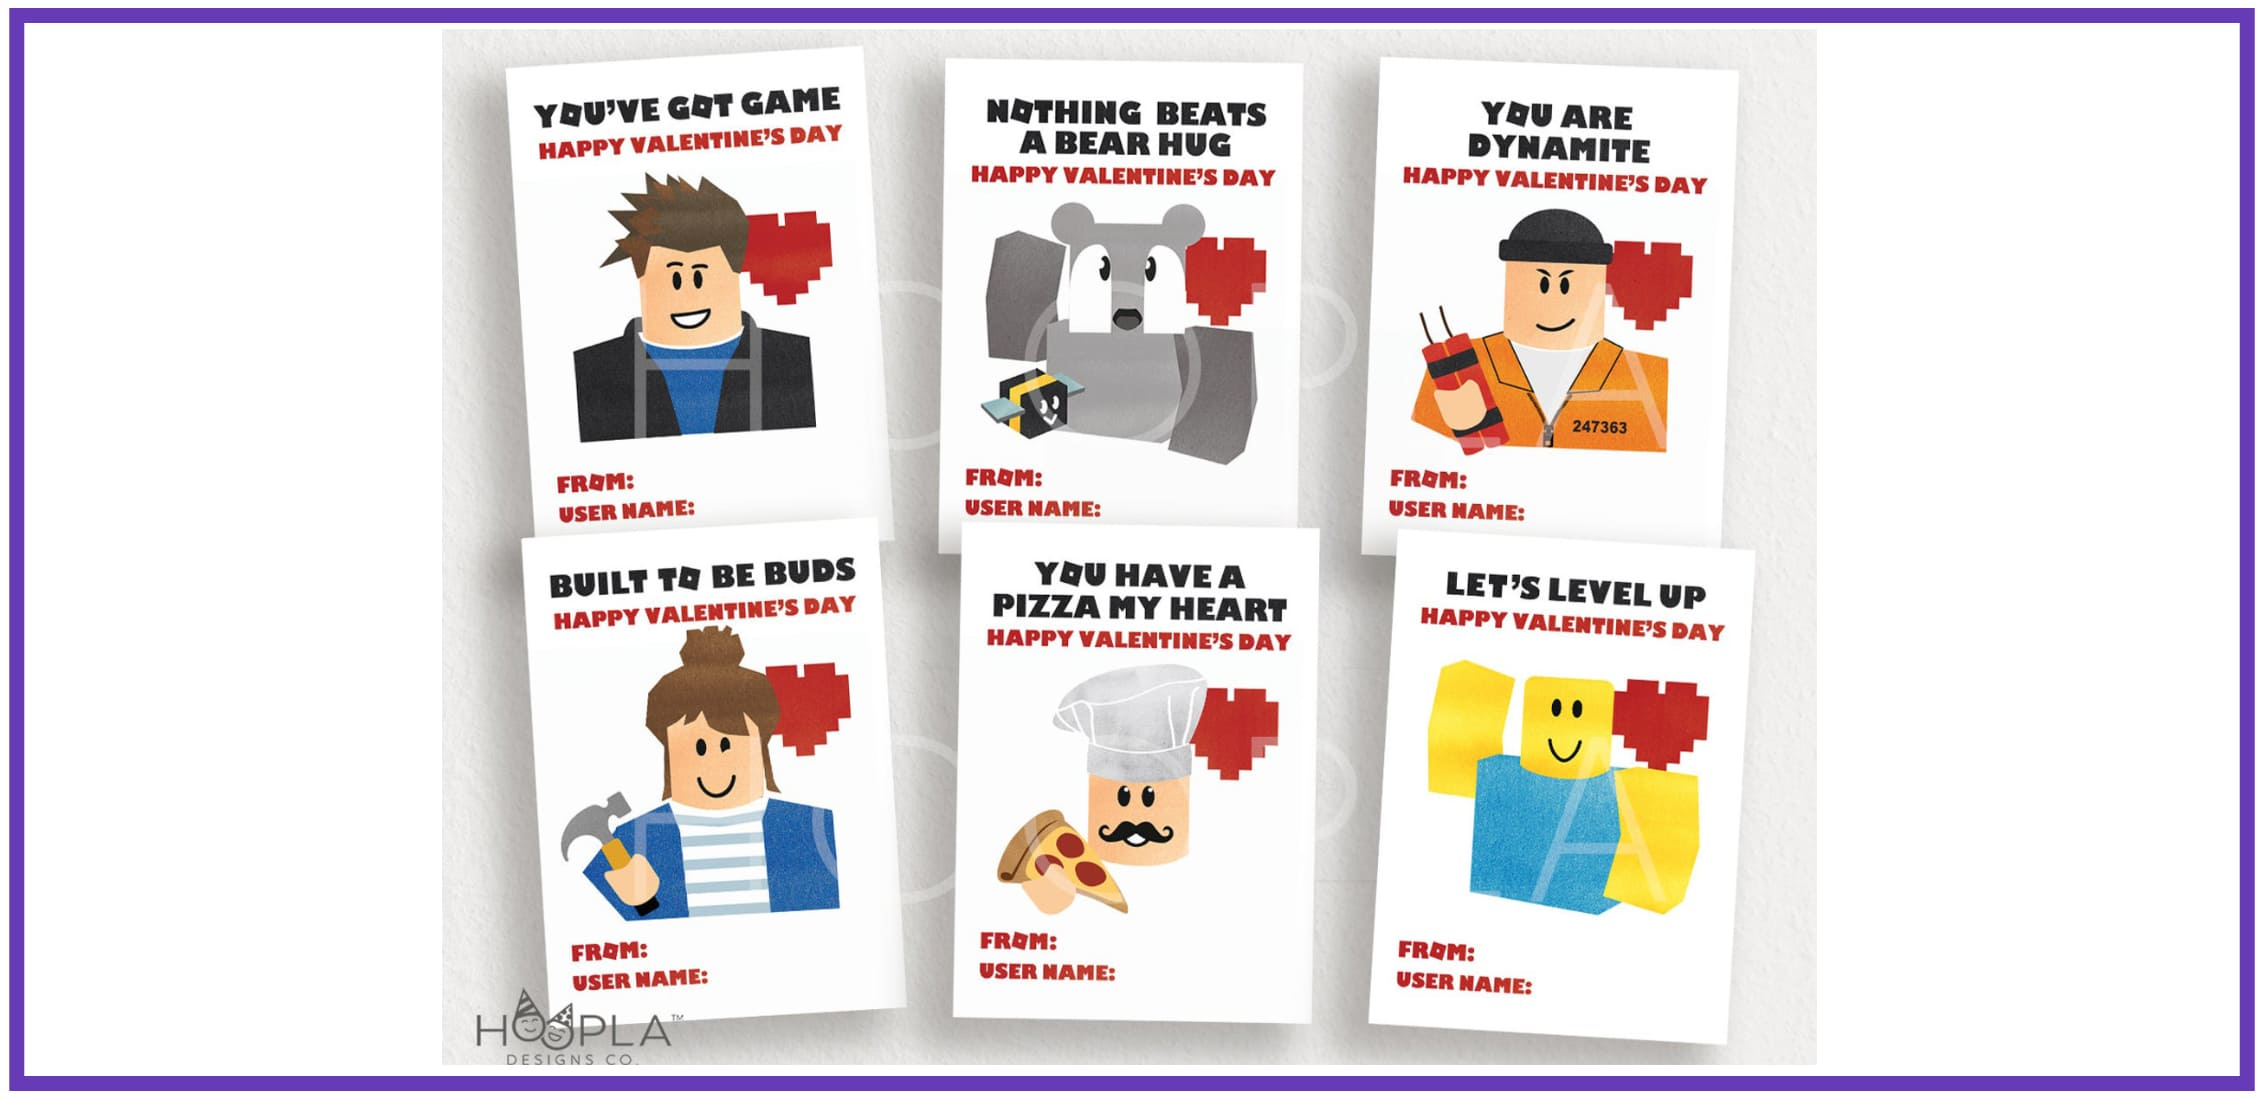 70+ Valentine's Day Cards 2021. Do not Forget about a Heartfelt Card for Your Valentine - valentines day card 15